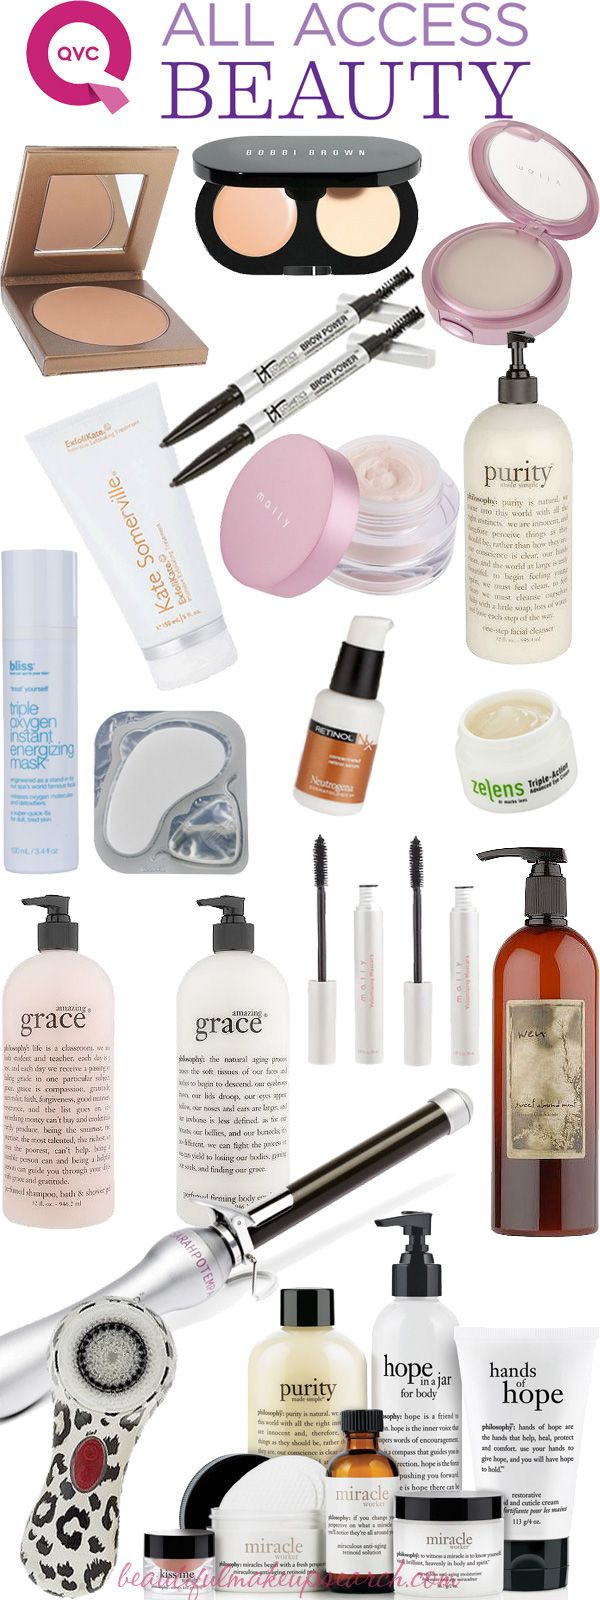 16 Beauty Faves from QVC.